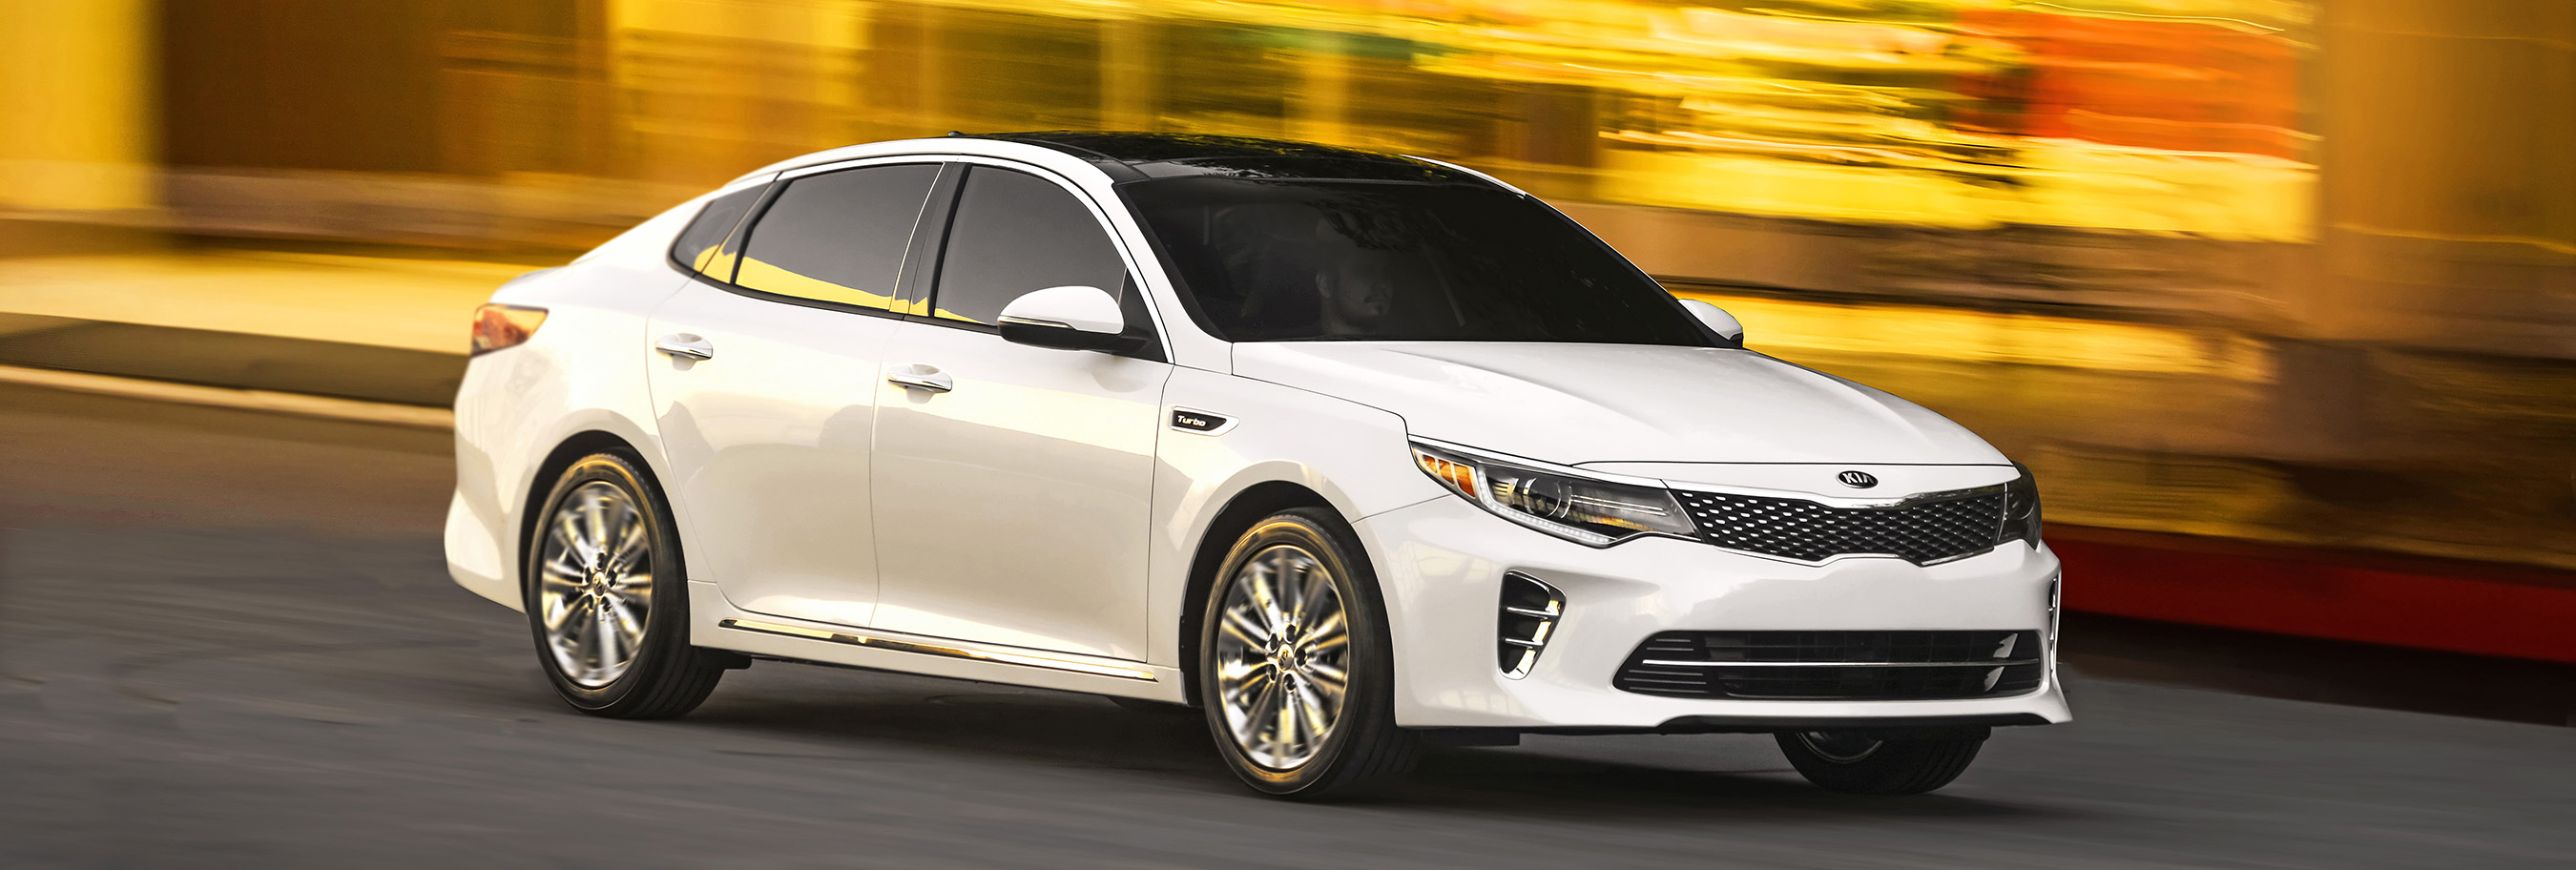 All New 2016 Optima Midsize Sedan Makes Global Debut At The York International Auto Show